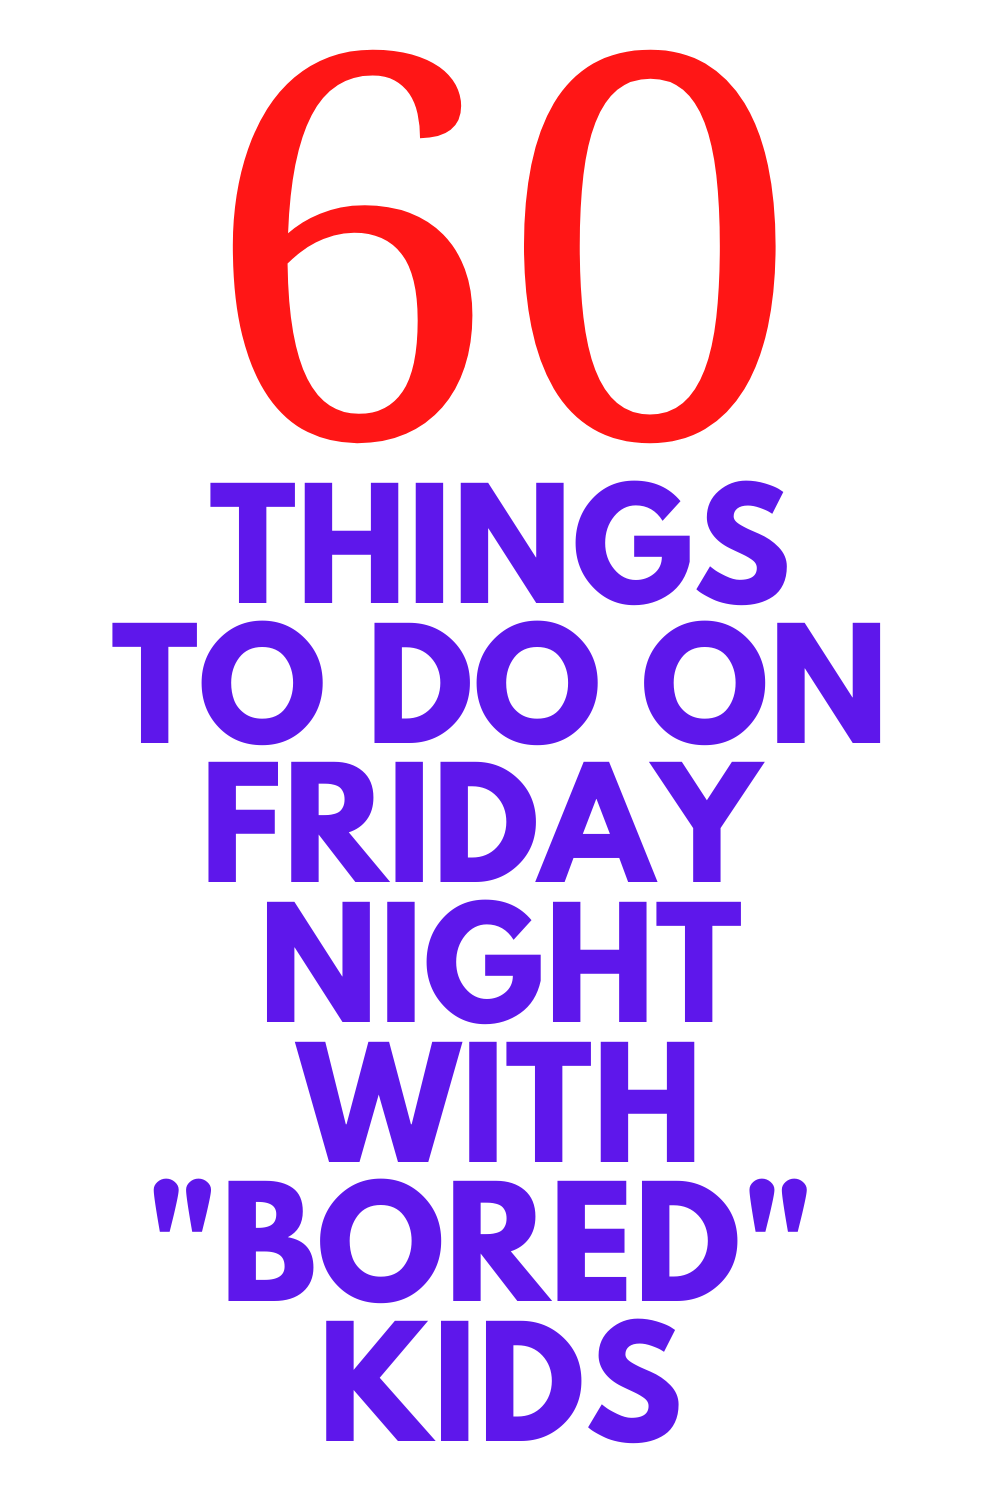 60 Things To Do On A Friday Night With Bored Kids In 2020 Friday Night Family Fun Night Bored Kids